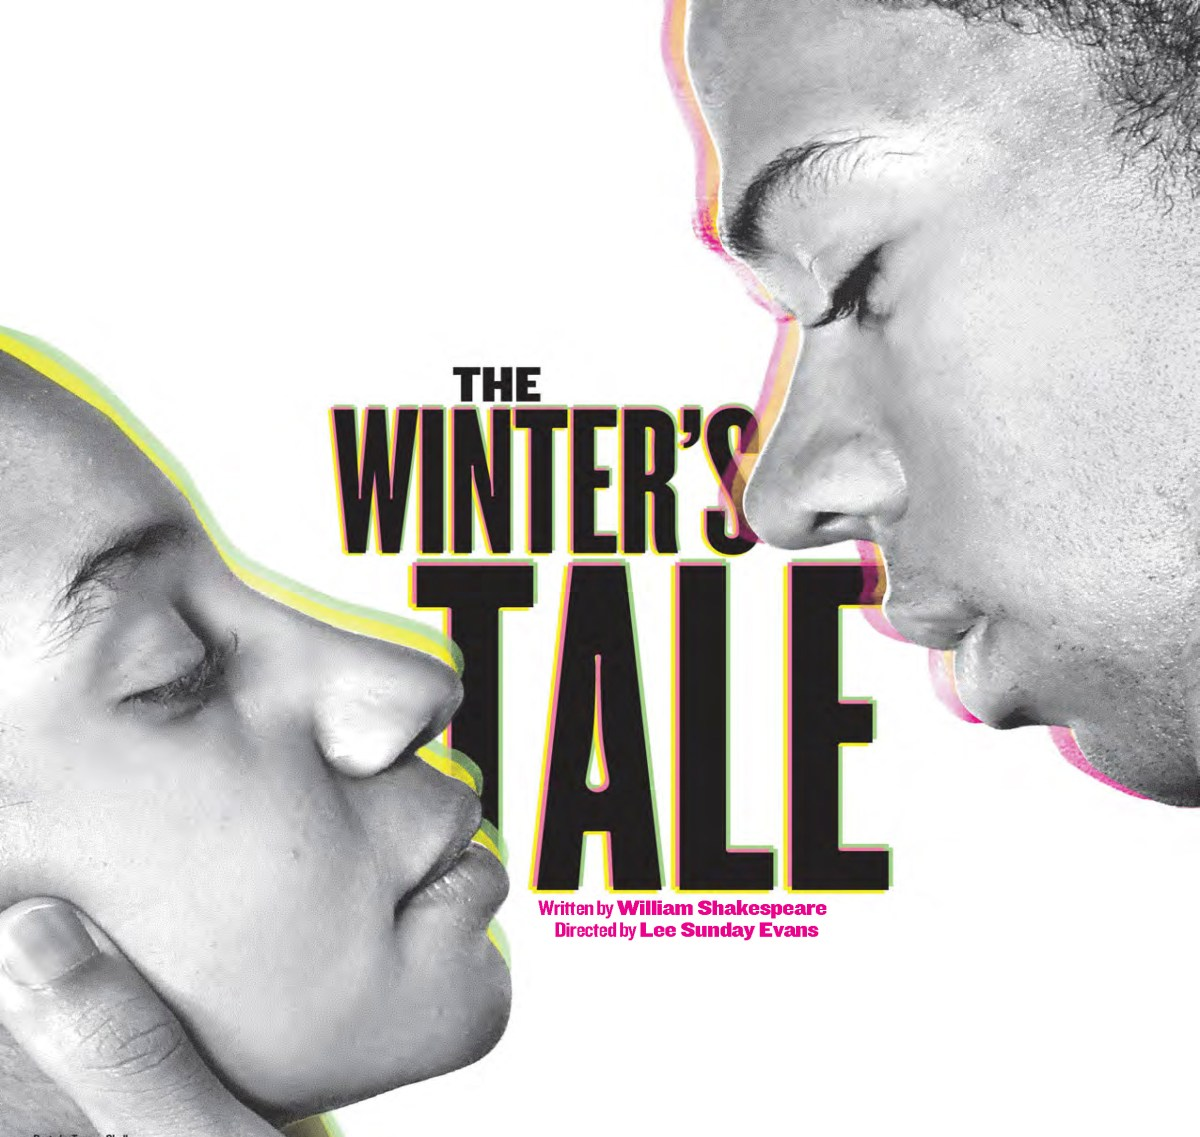 A Winter's Tale: Free Theater in Marcus Garvey Park 🗓